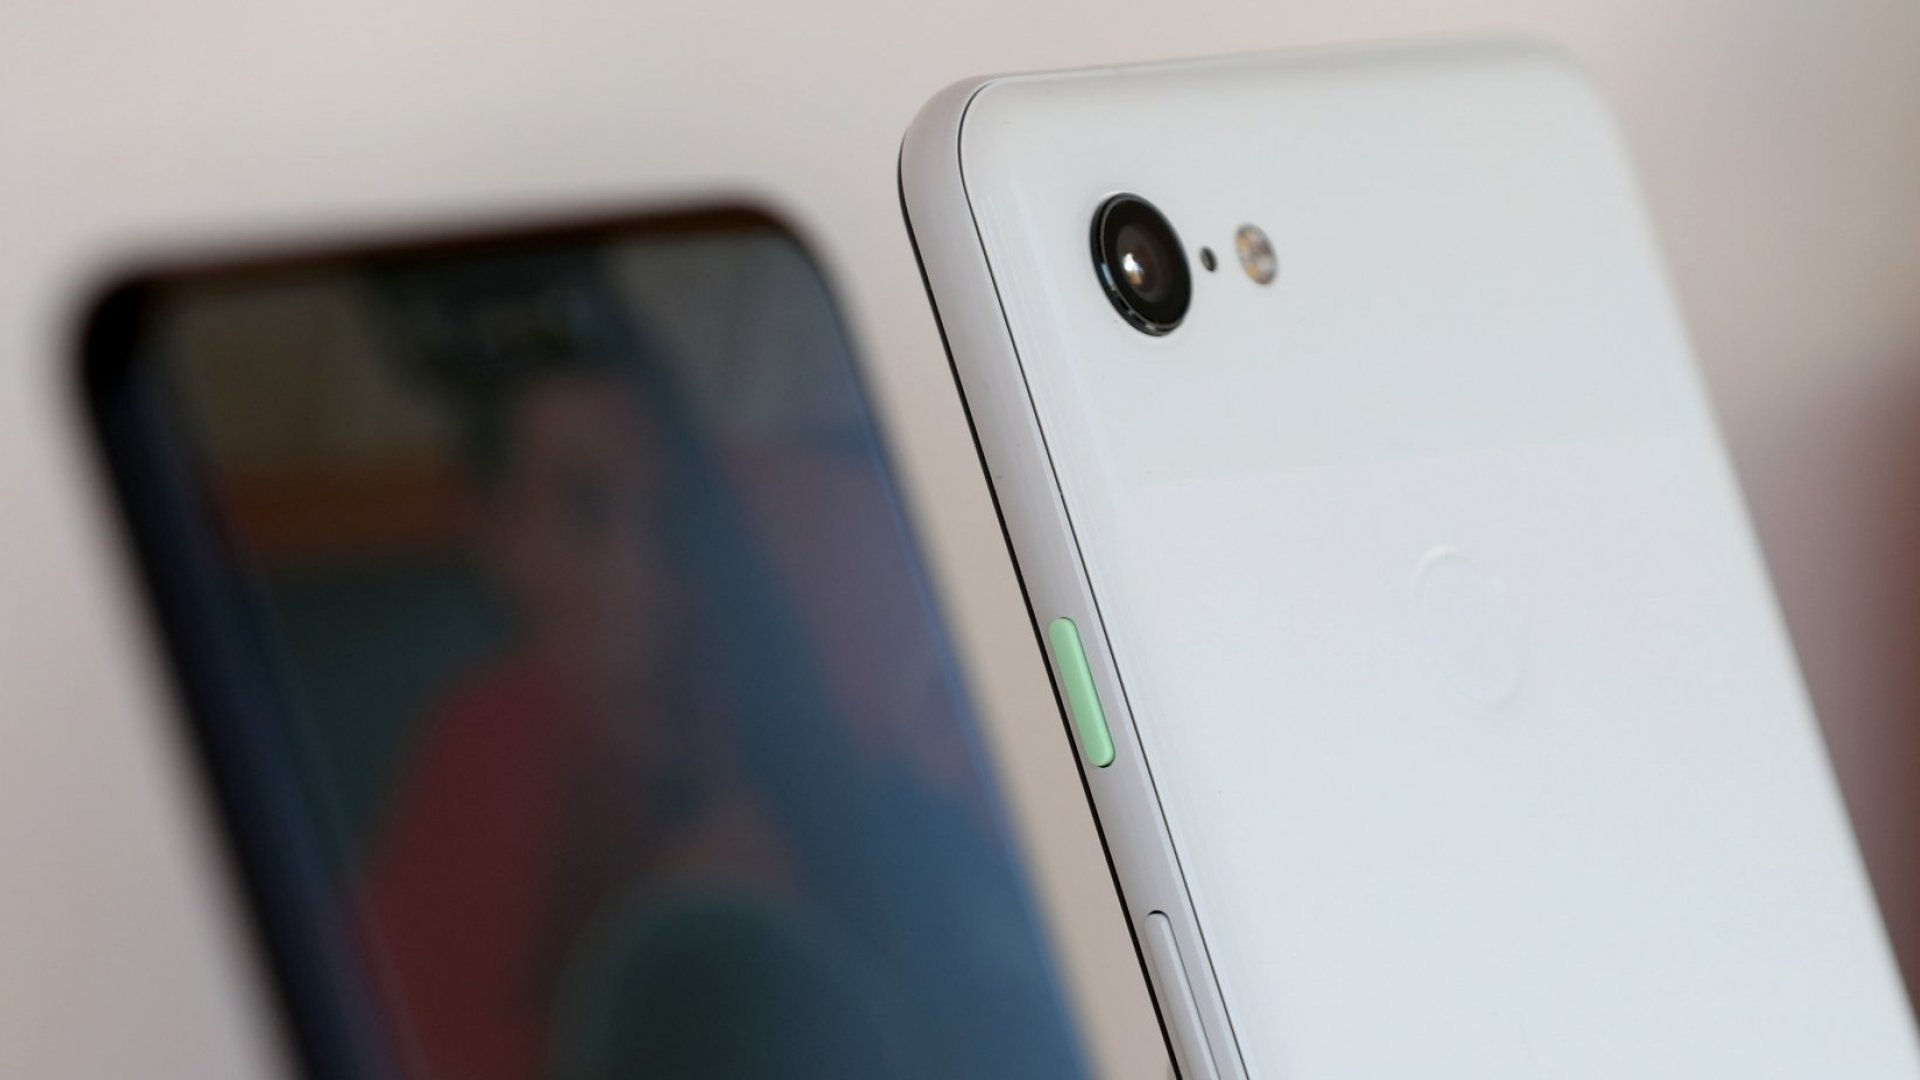 Google Pixel 3a Or Iphone 7 Here S Which One Is The Best Low Price Smartphone Inc Com